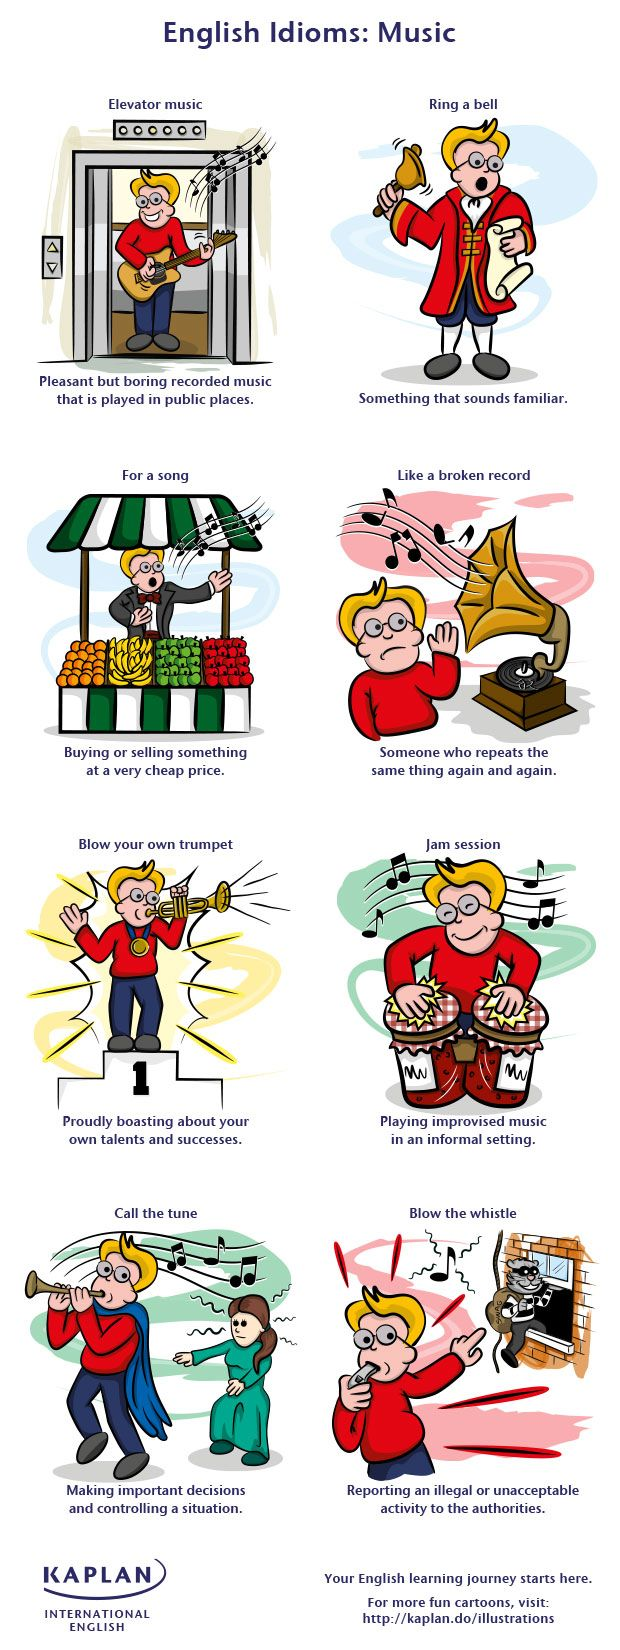 10 Music Idioms for you to enjoy - English with a Twist - repinned by @PediaStaff – Please Visit ht.ly/63sNt for all our ped therapy, school & special ed pins